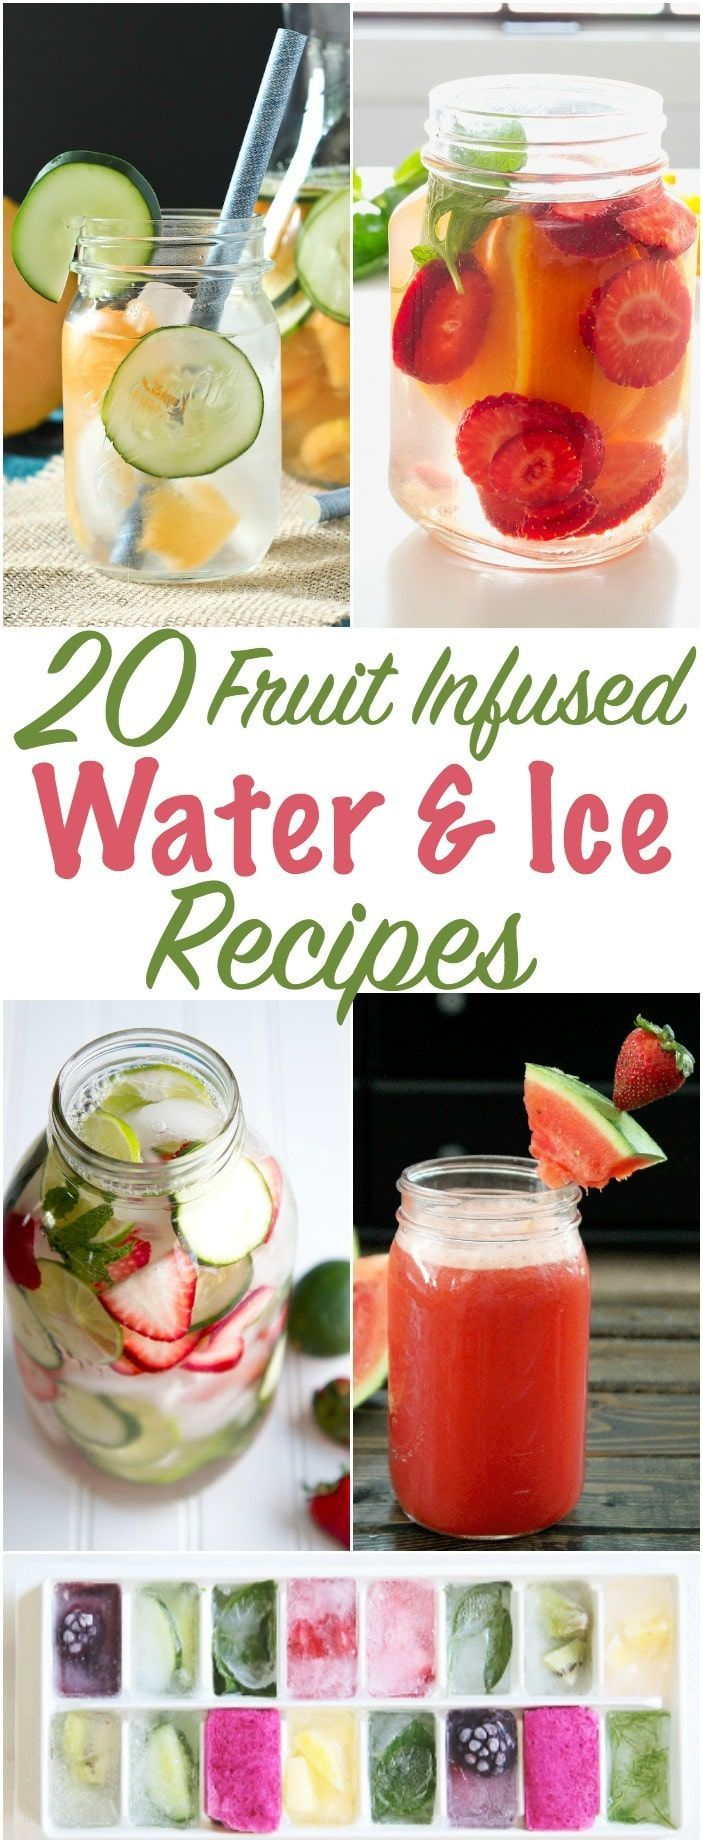 With Summer just around the corner, we need refreshing drinks to get us through the day. Check out these fruit infused flavored water combinations. This post contains affiliate links. Strawberry Orange Basil Infused Water Apple Orange Raspberry Water Orange Strawberry Mint Water Strawberry Jalepeńo Water Strawberry Lime Cucumber Water Cantaloupe Strawberry Water Apple Cinnamon Water...Read More »